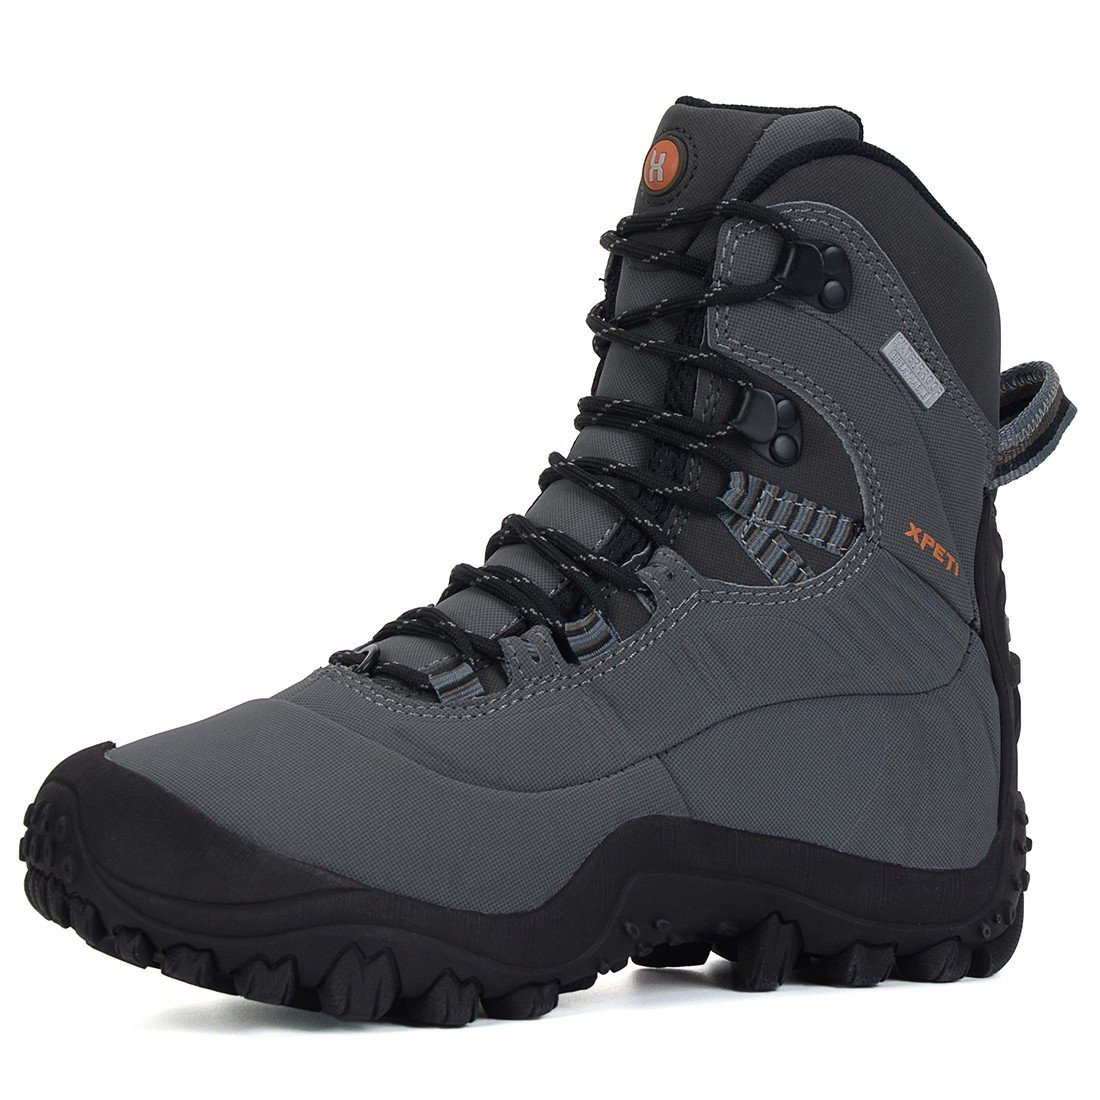 Light Grey 10 D(M) US XPETI Men's Thermator Mid-Rise Waterproof Hiking Trekking Insulated Outdoor Boots